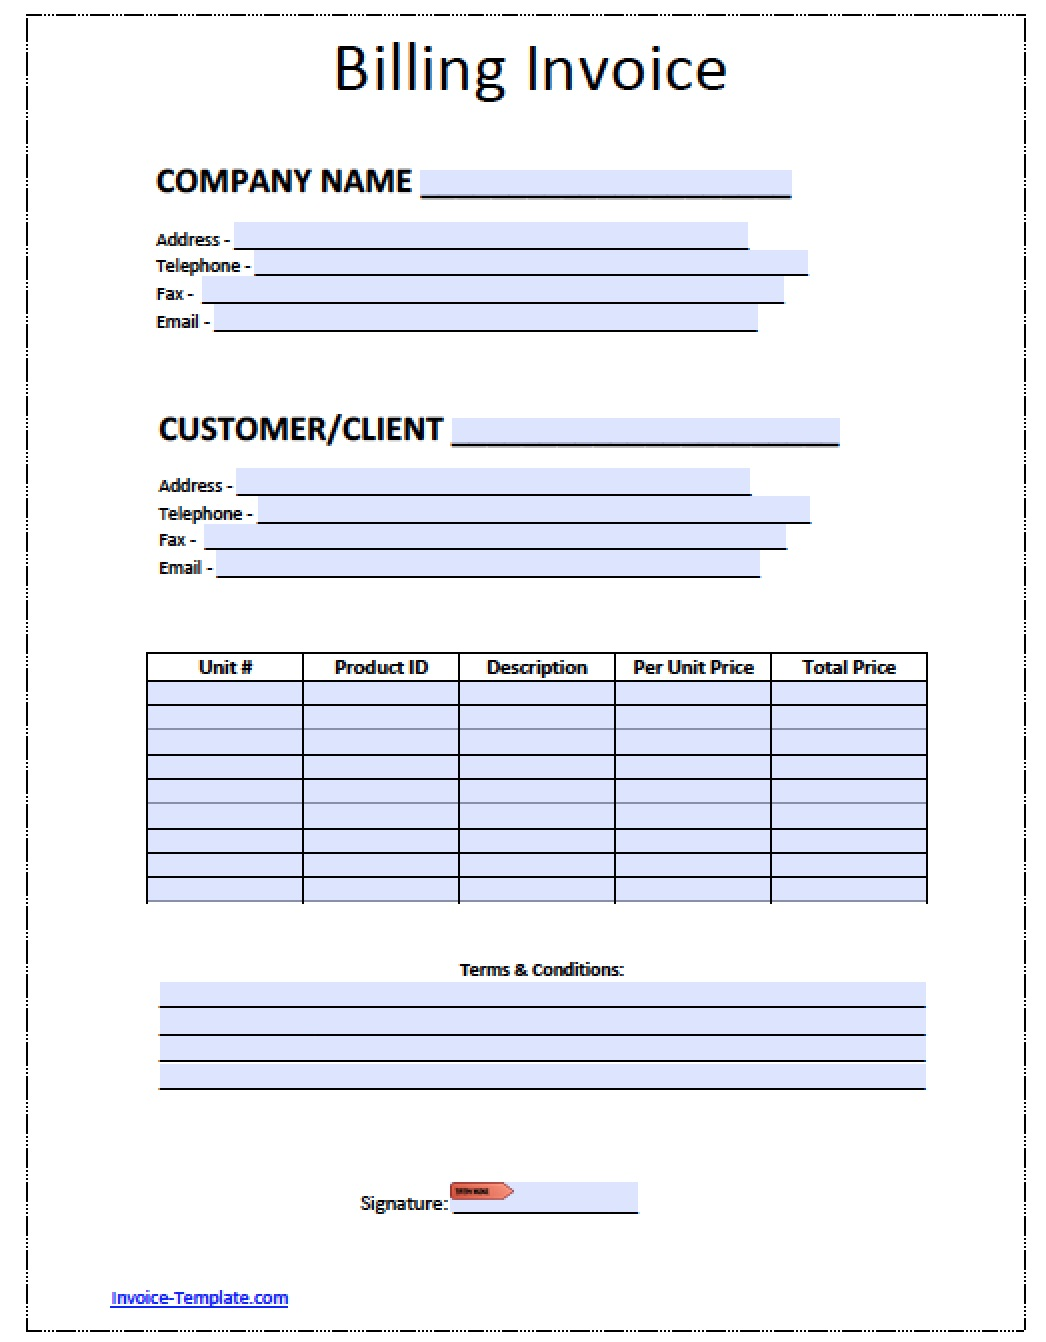 Breakupus  Remarkable Billing Invoice Invoices Faq U Cloudflare Support Billing  With Extraordinary Free Billing Invoice Template  Excel  Pdf  Word Doc  Billing With Breathtaking Invoice Generator Software Free Download Also Create Invoice Online Free In Addition Proforma Invoice Letter Sample And What Should An Invoice Contain As Well As Download An Invoice Template Additionally Office Depot Invoices From Happytomco With Breakupus  Extraordinary Billing Invoice Invoices Faq U Cloudflare Support Billing  With Breathtaking Free Billing Invoice Template  Excel  Pdf  Word Doc  Billing And Remarkable Invoice Generator Software Free Download Also Create Invoice Online Free In Addition Proforma Invoice Letter Sample From Happytomco